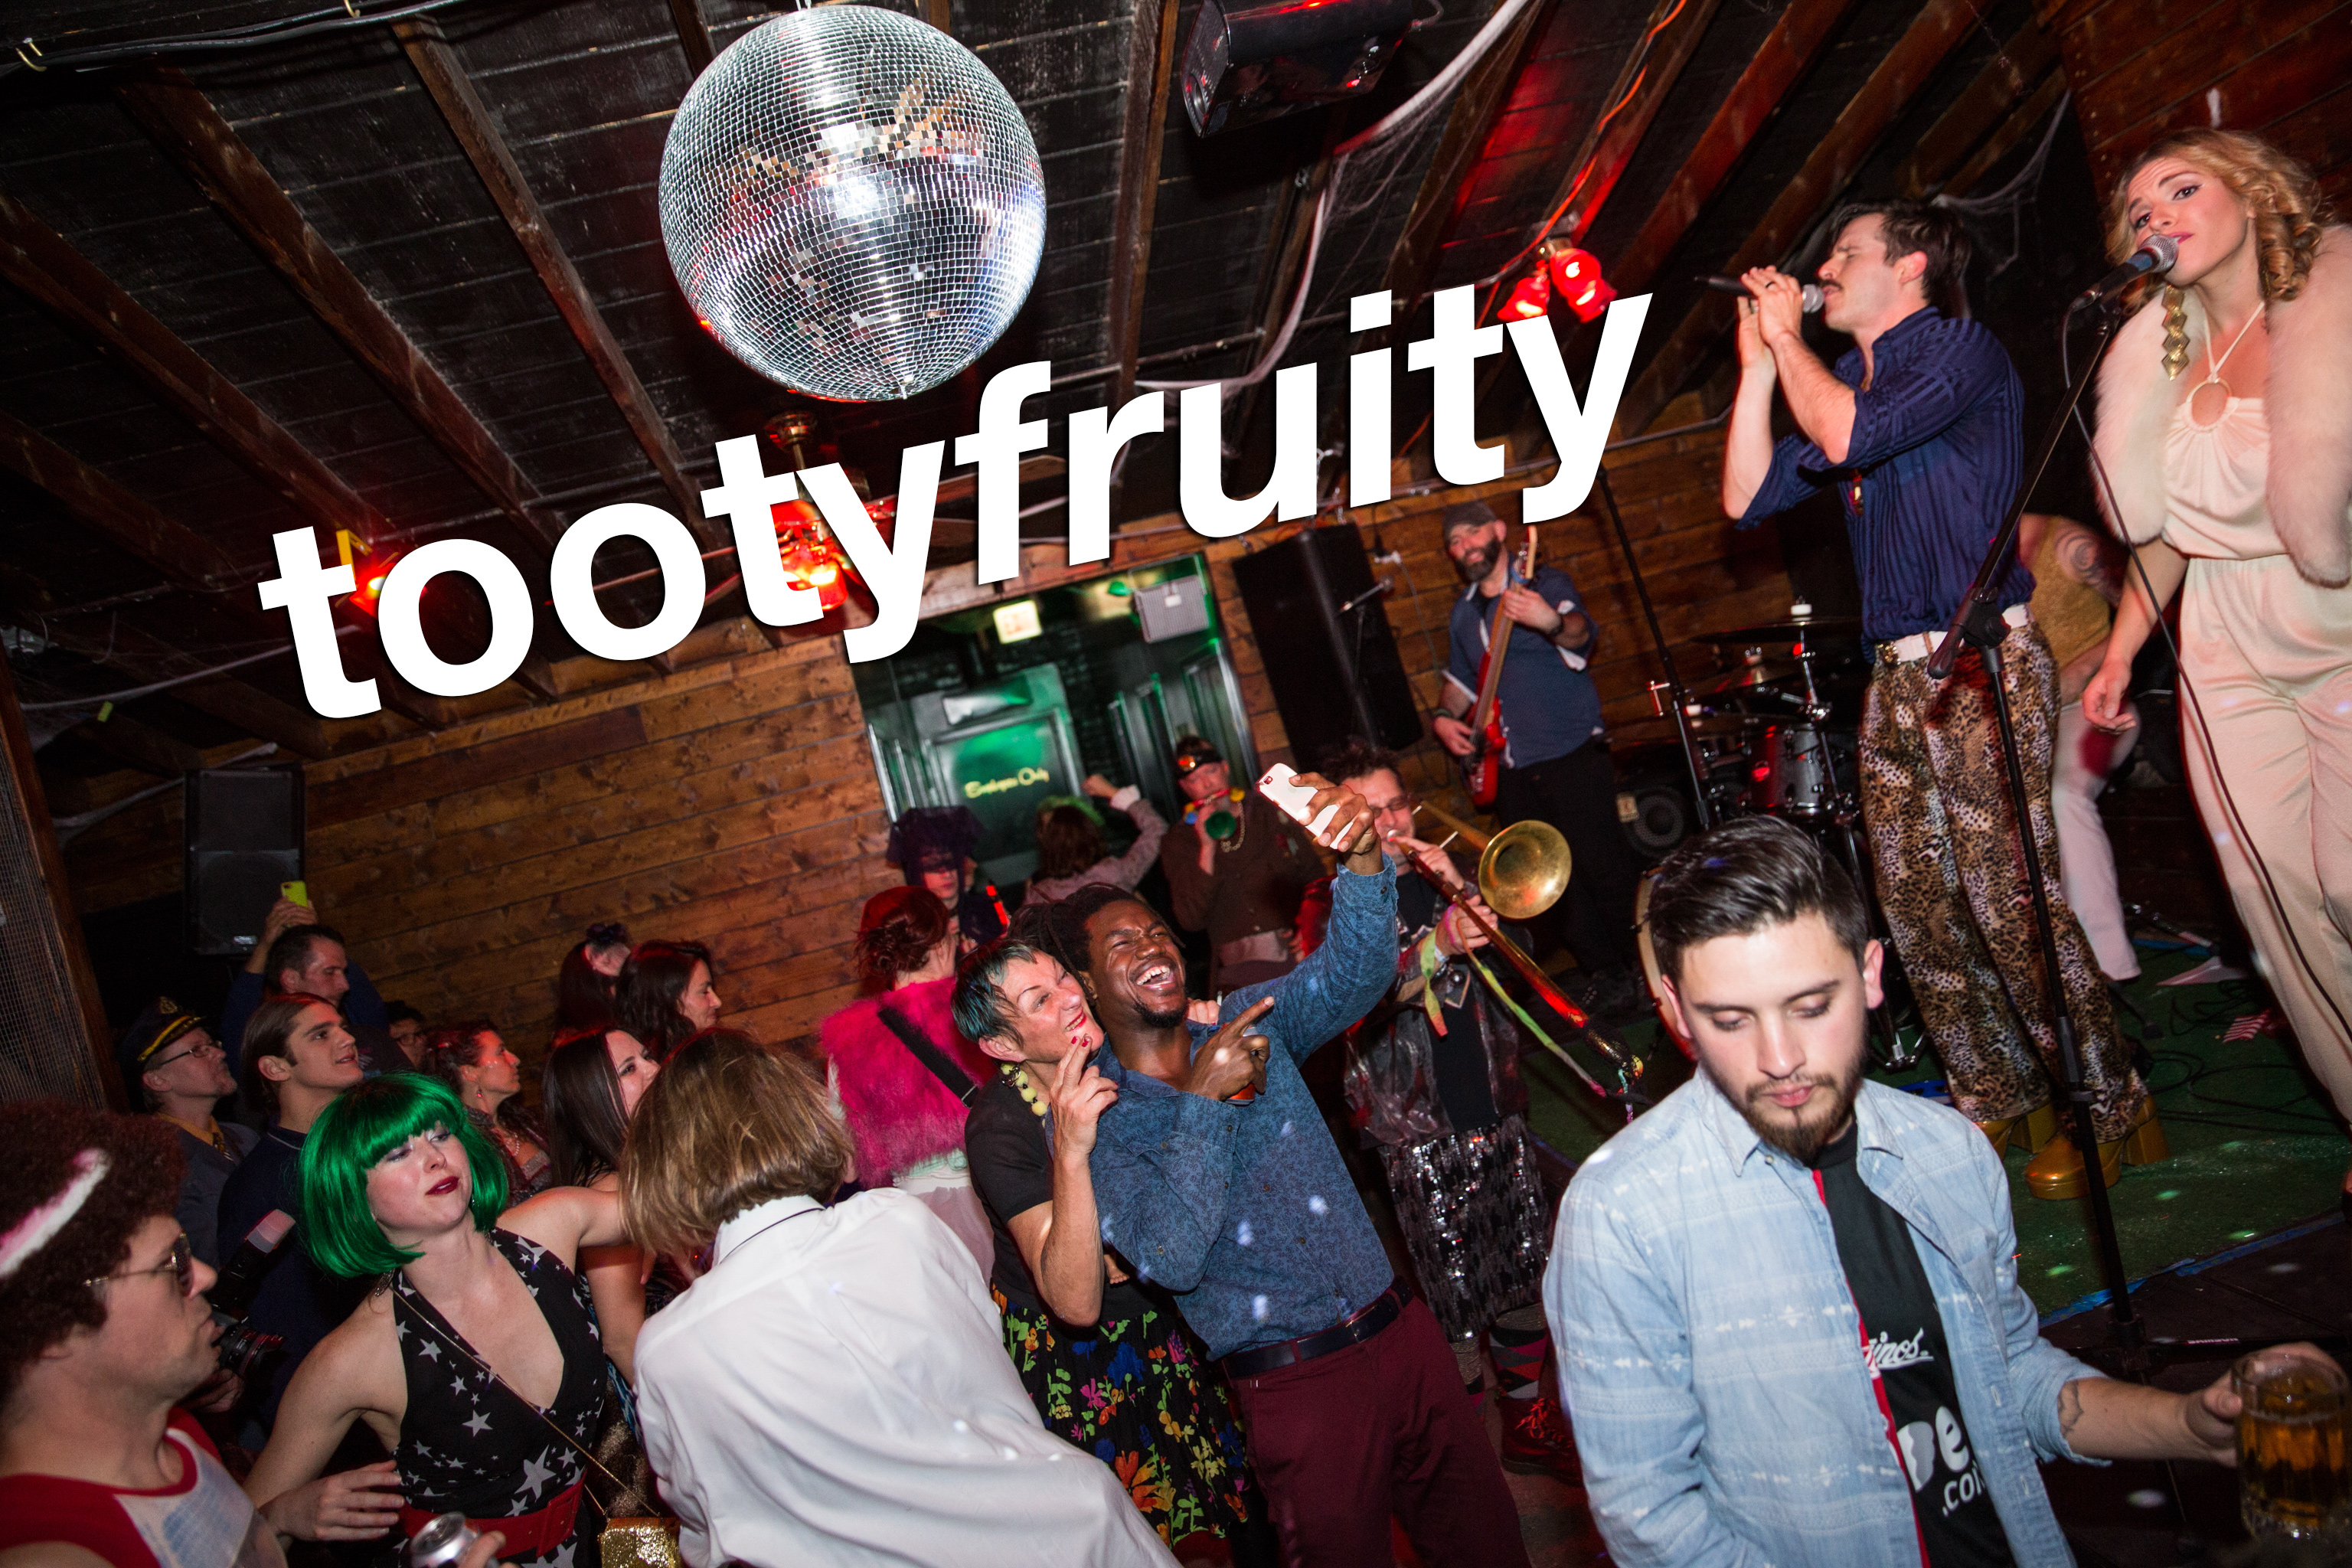 the tooty fruity fashion funktacular at slippery slope, october 2017